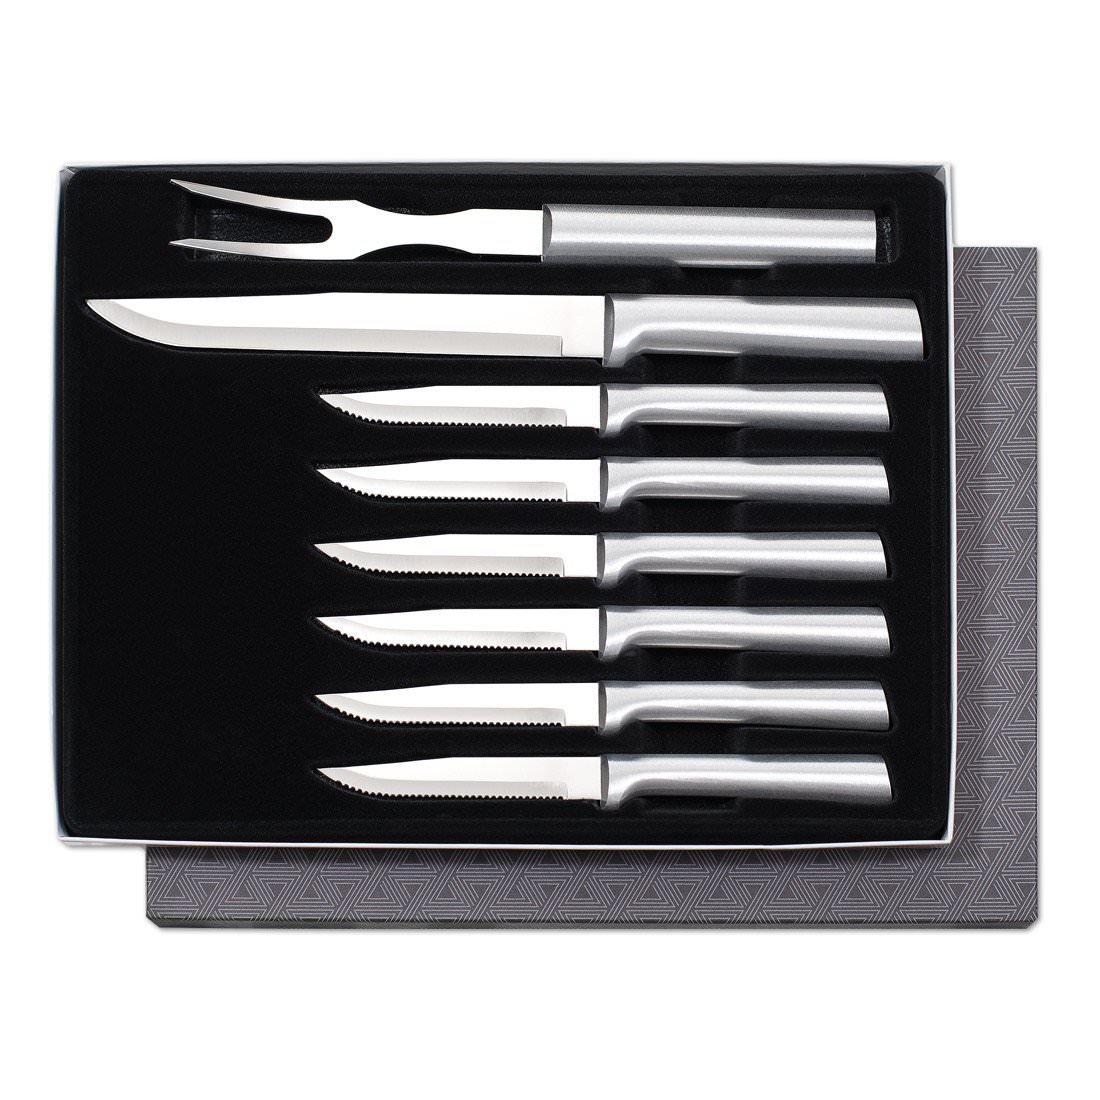 Rada Cutlery Meat Lover's 8-Piece Steak Knife Gift Set – Stainless Steel Blades With Aluminum Handles